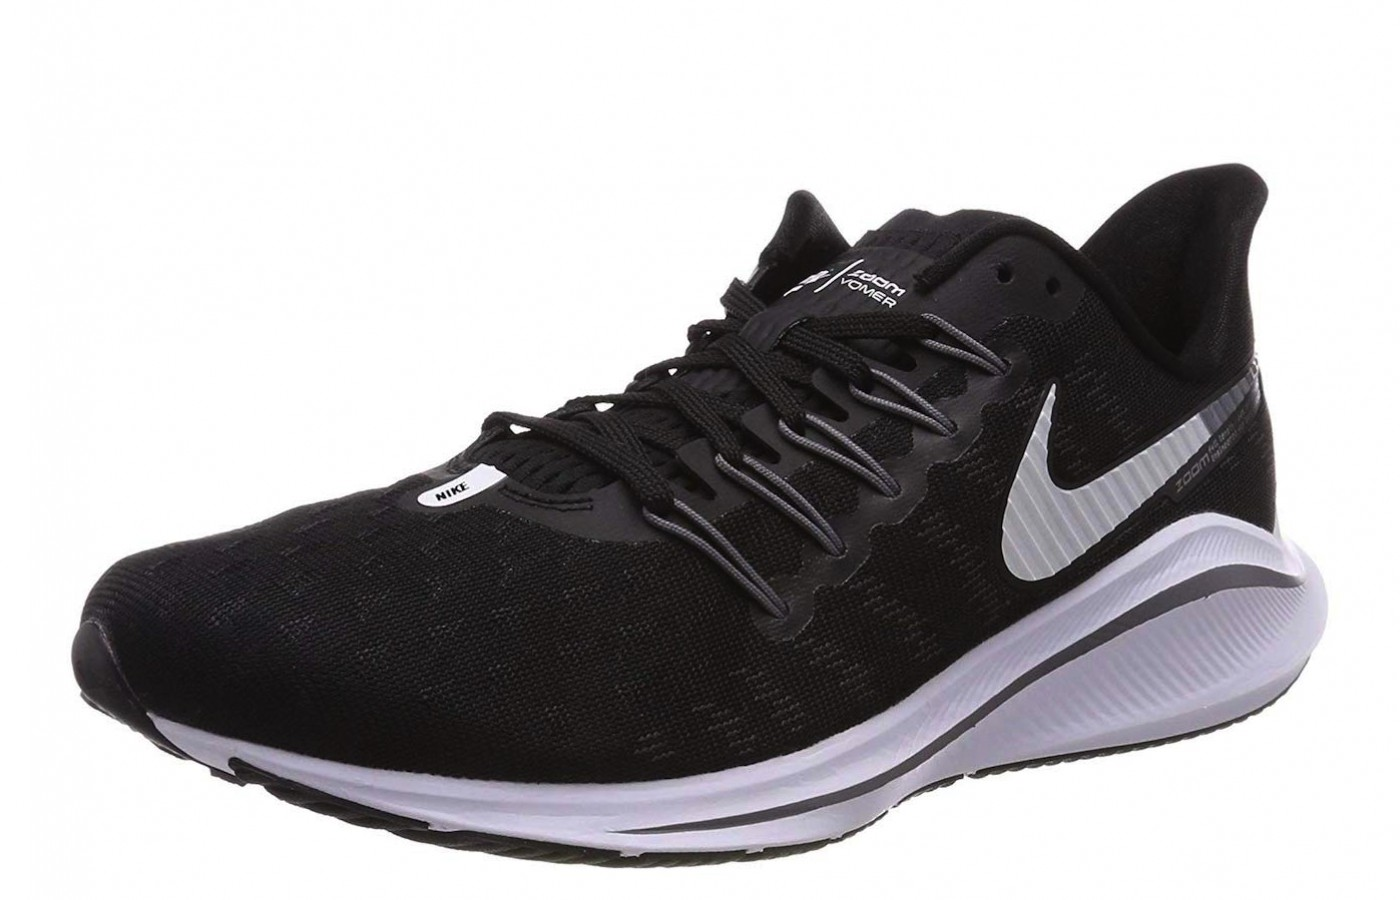 The Nike Zoom Vomero 14 offers a lightweight, comfortable design.